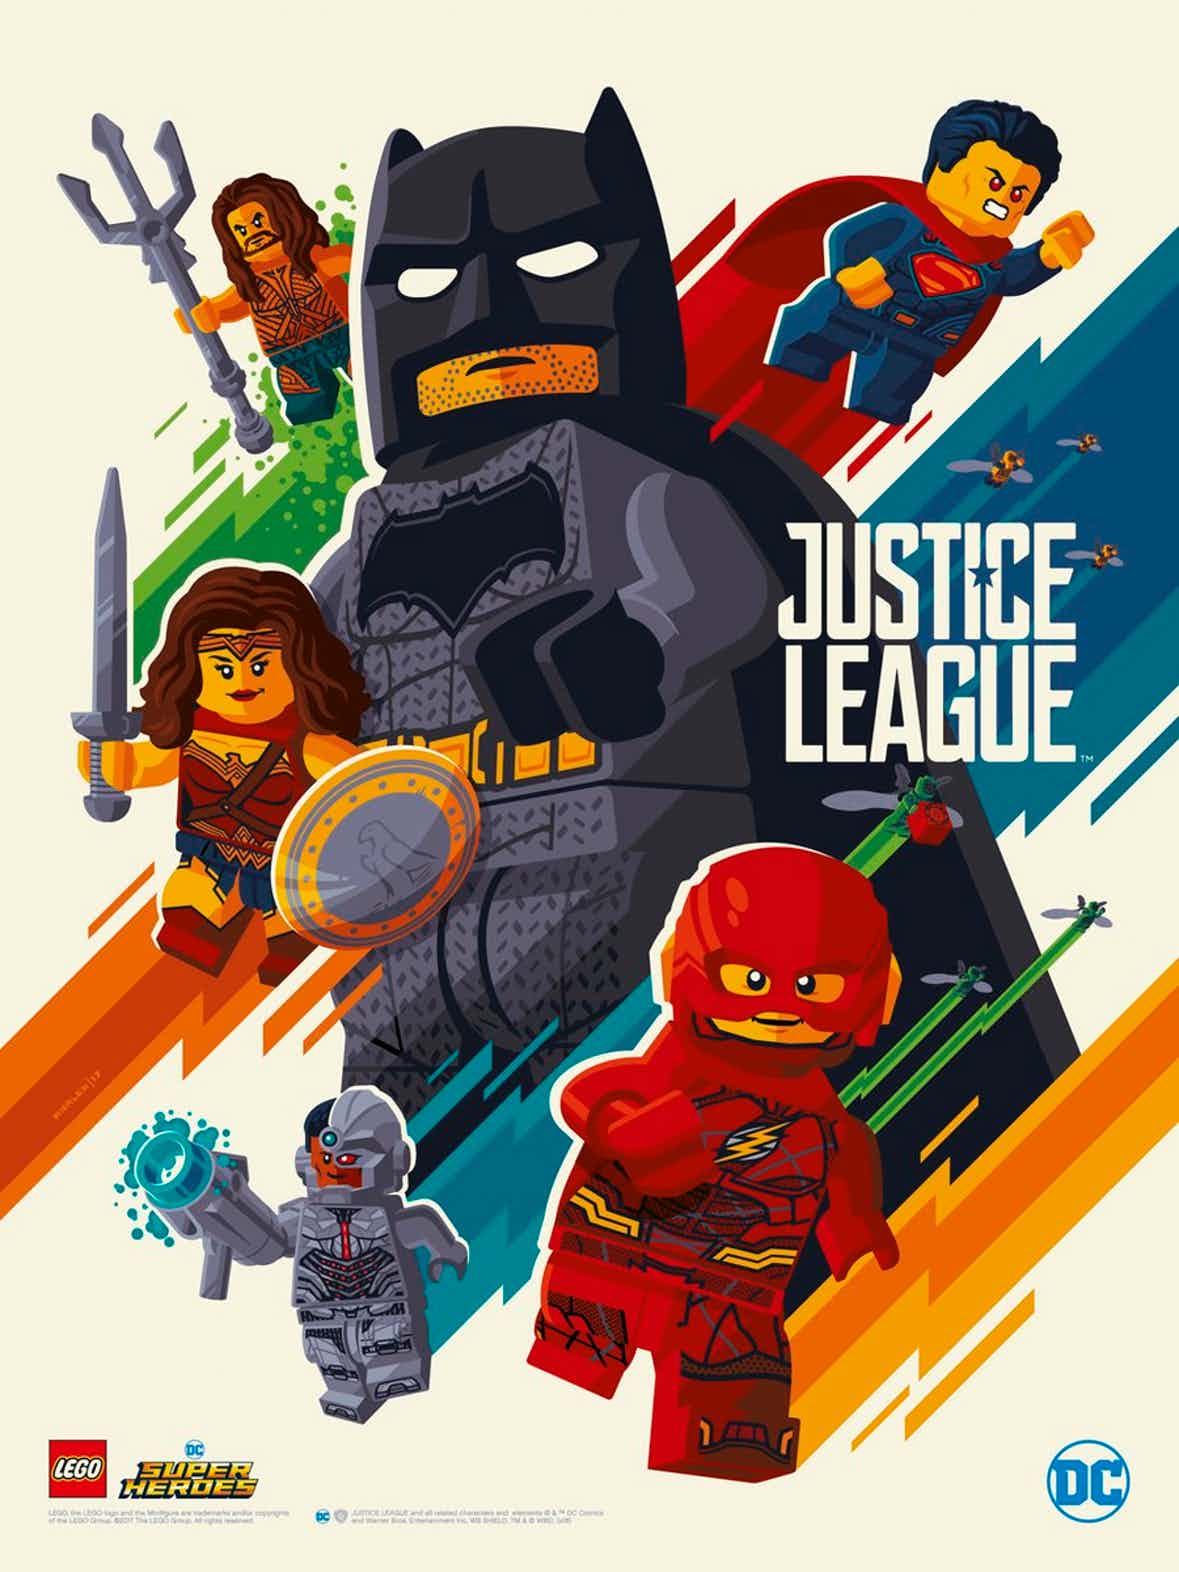 movieposter_Justice-League-Lego-Poster-By-Tom-Whalen